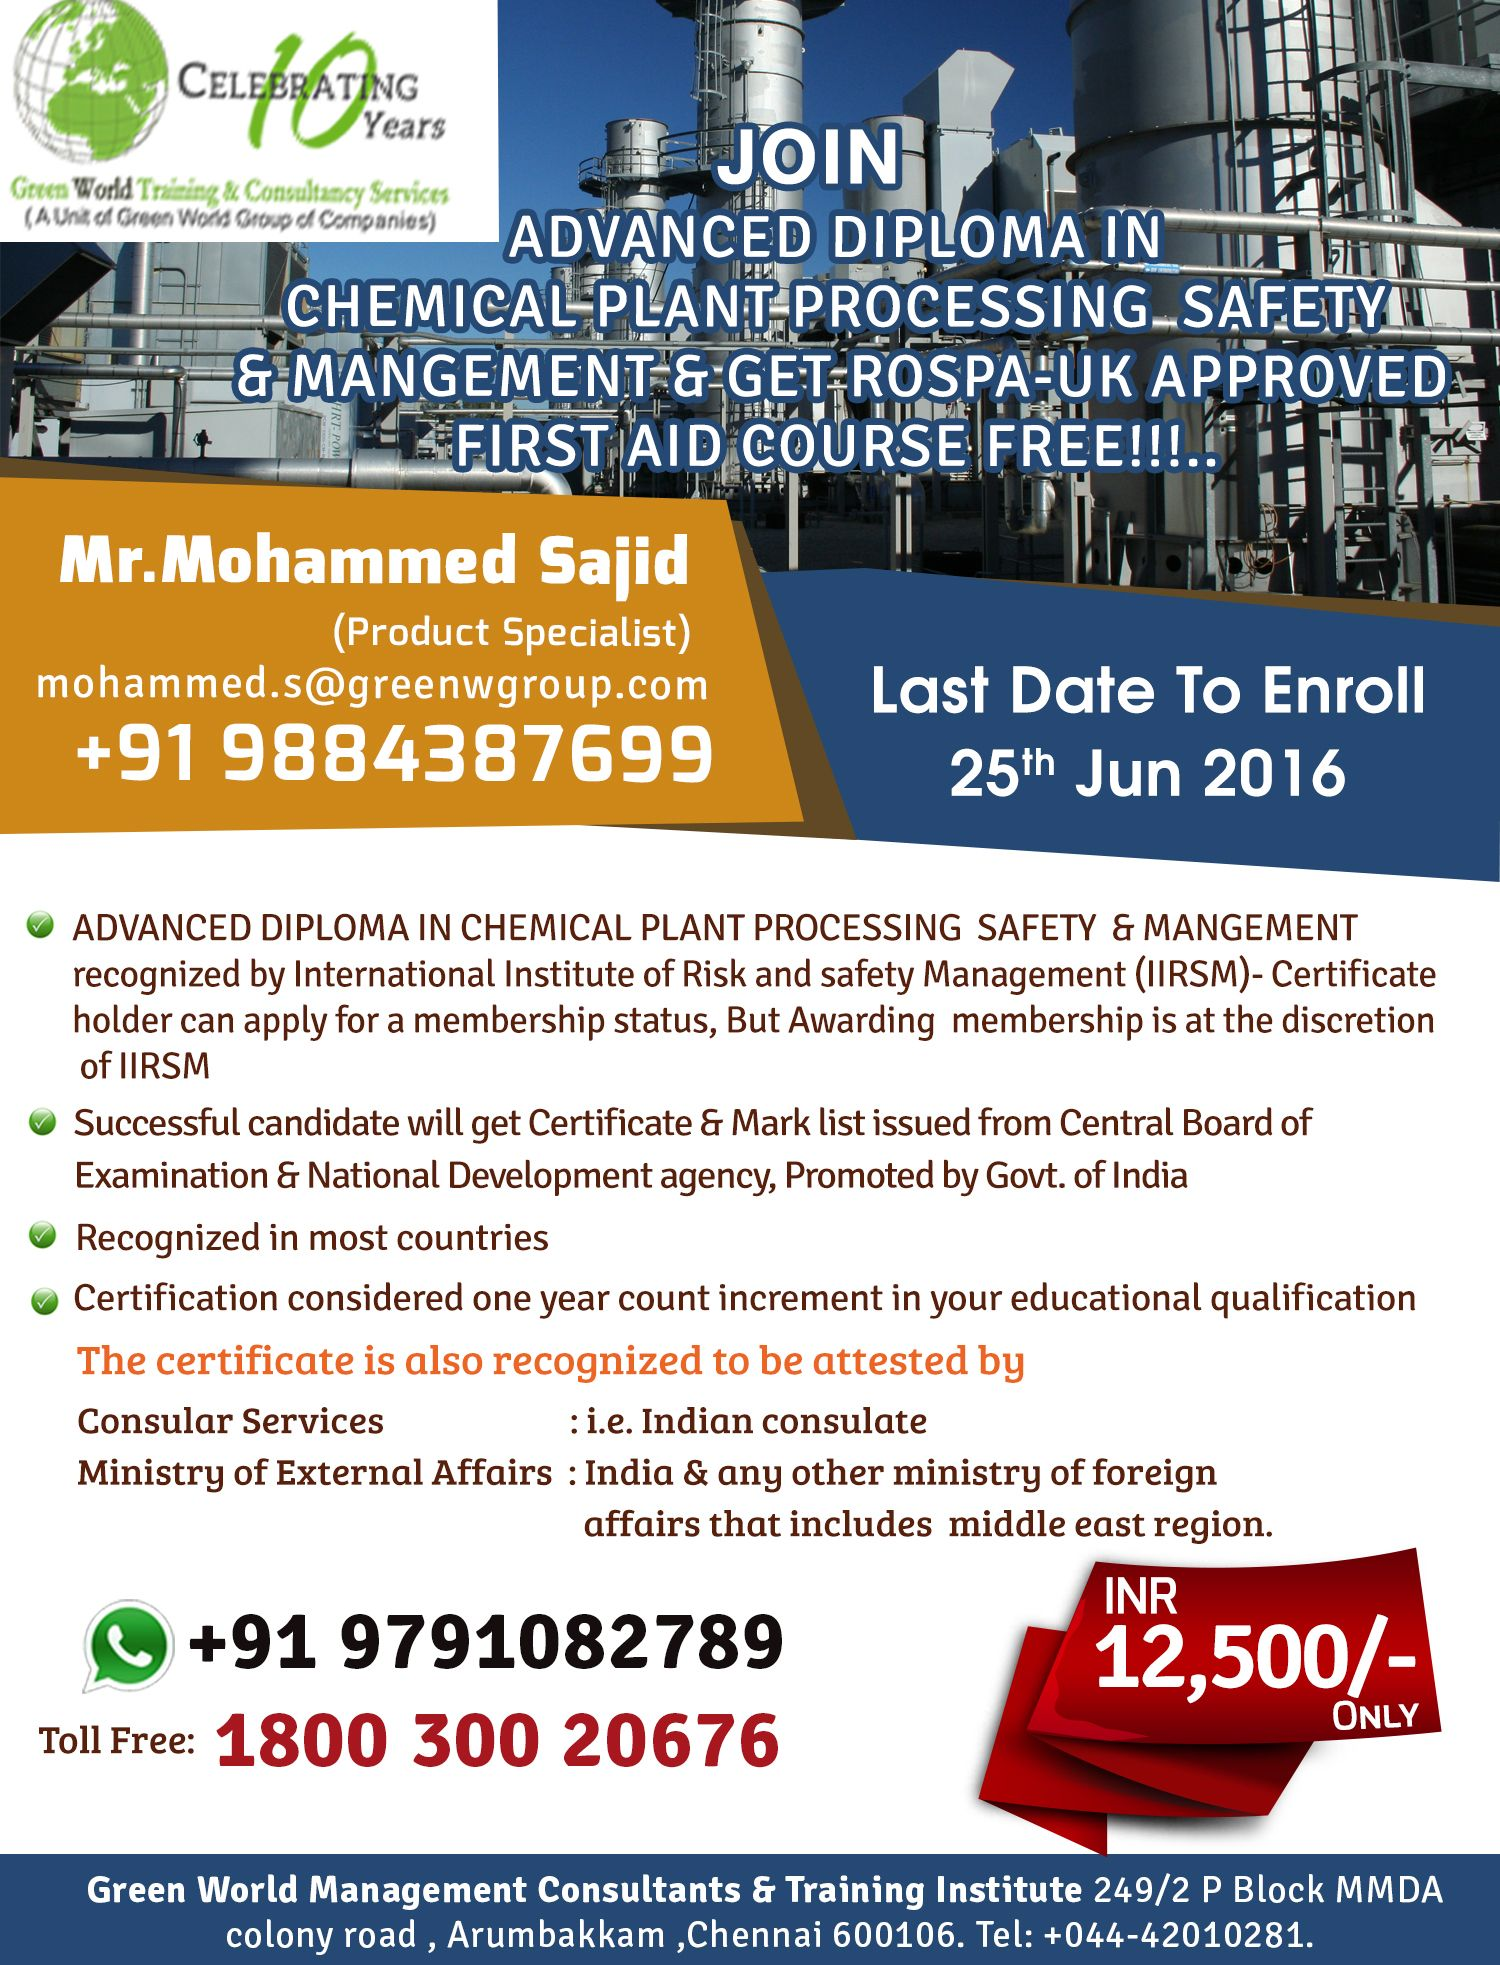 Pin by Green World on Join Advance Diploma in Chemical